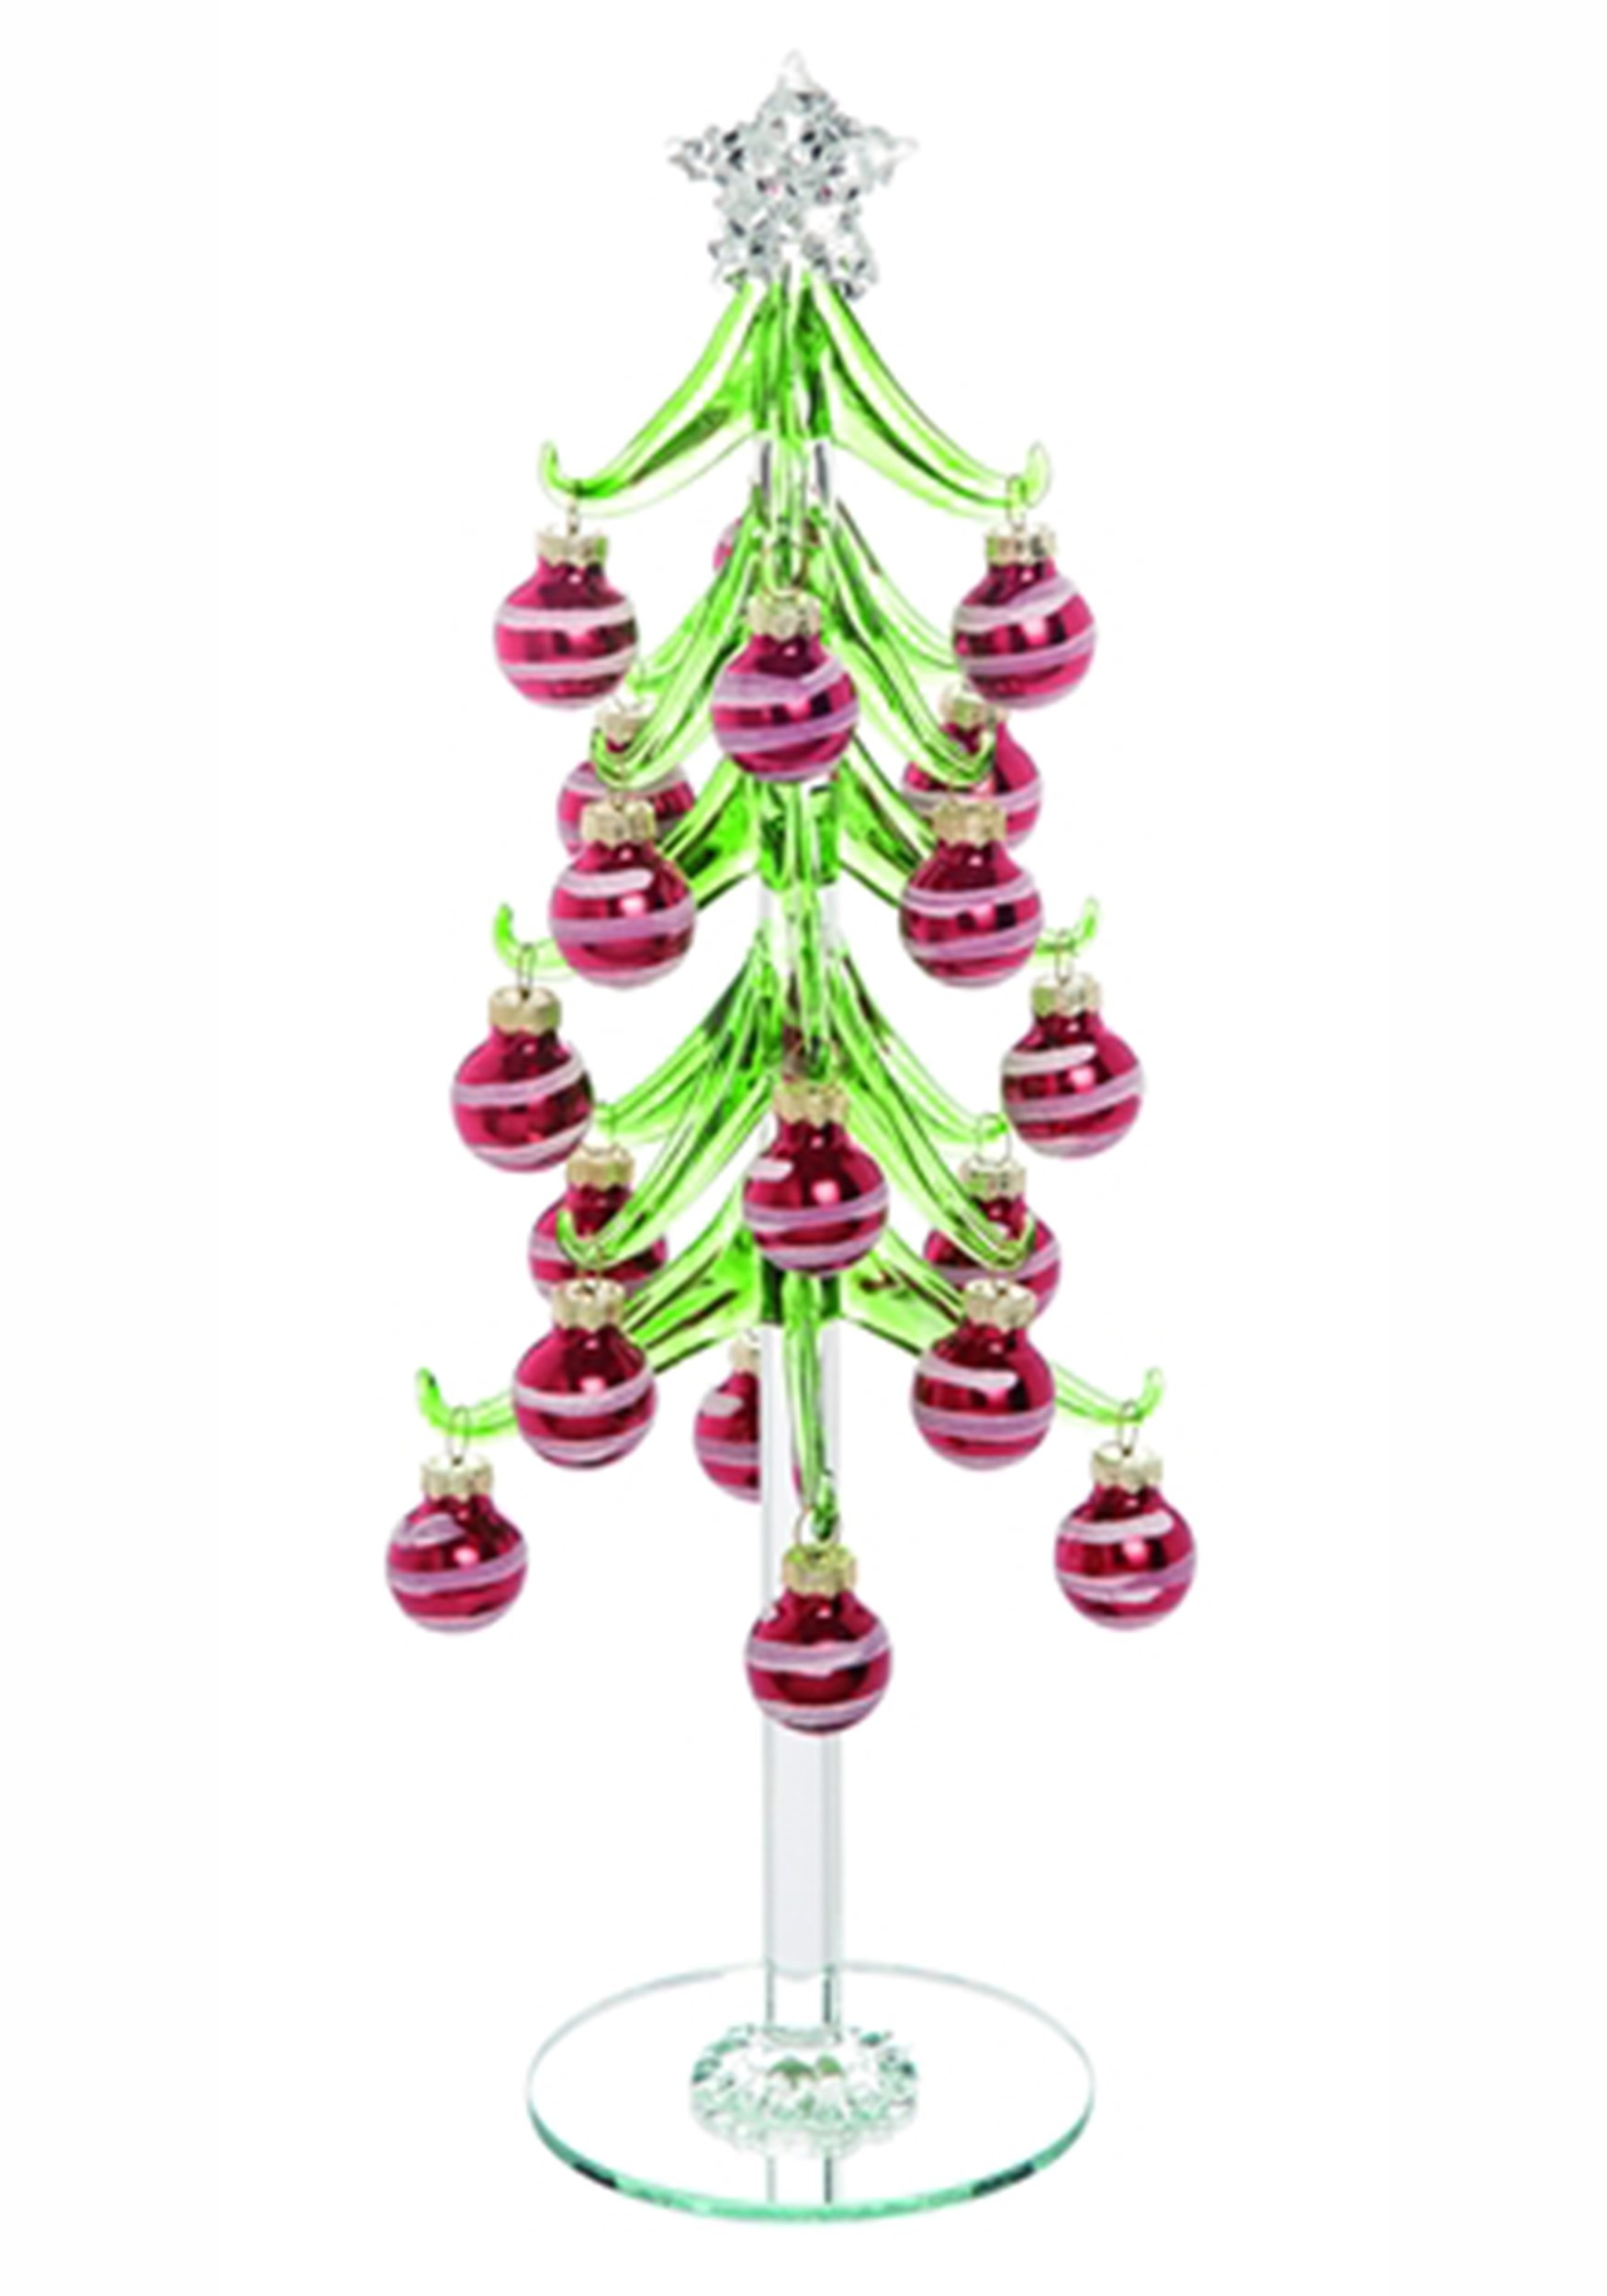 Trinket Ornament Tree Glass Christmas Décor